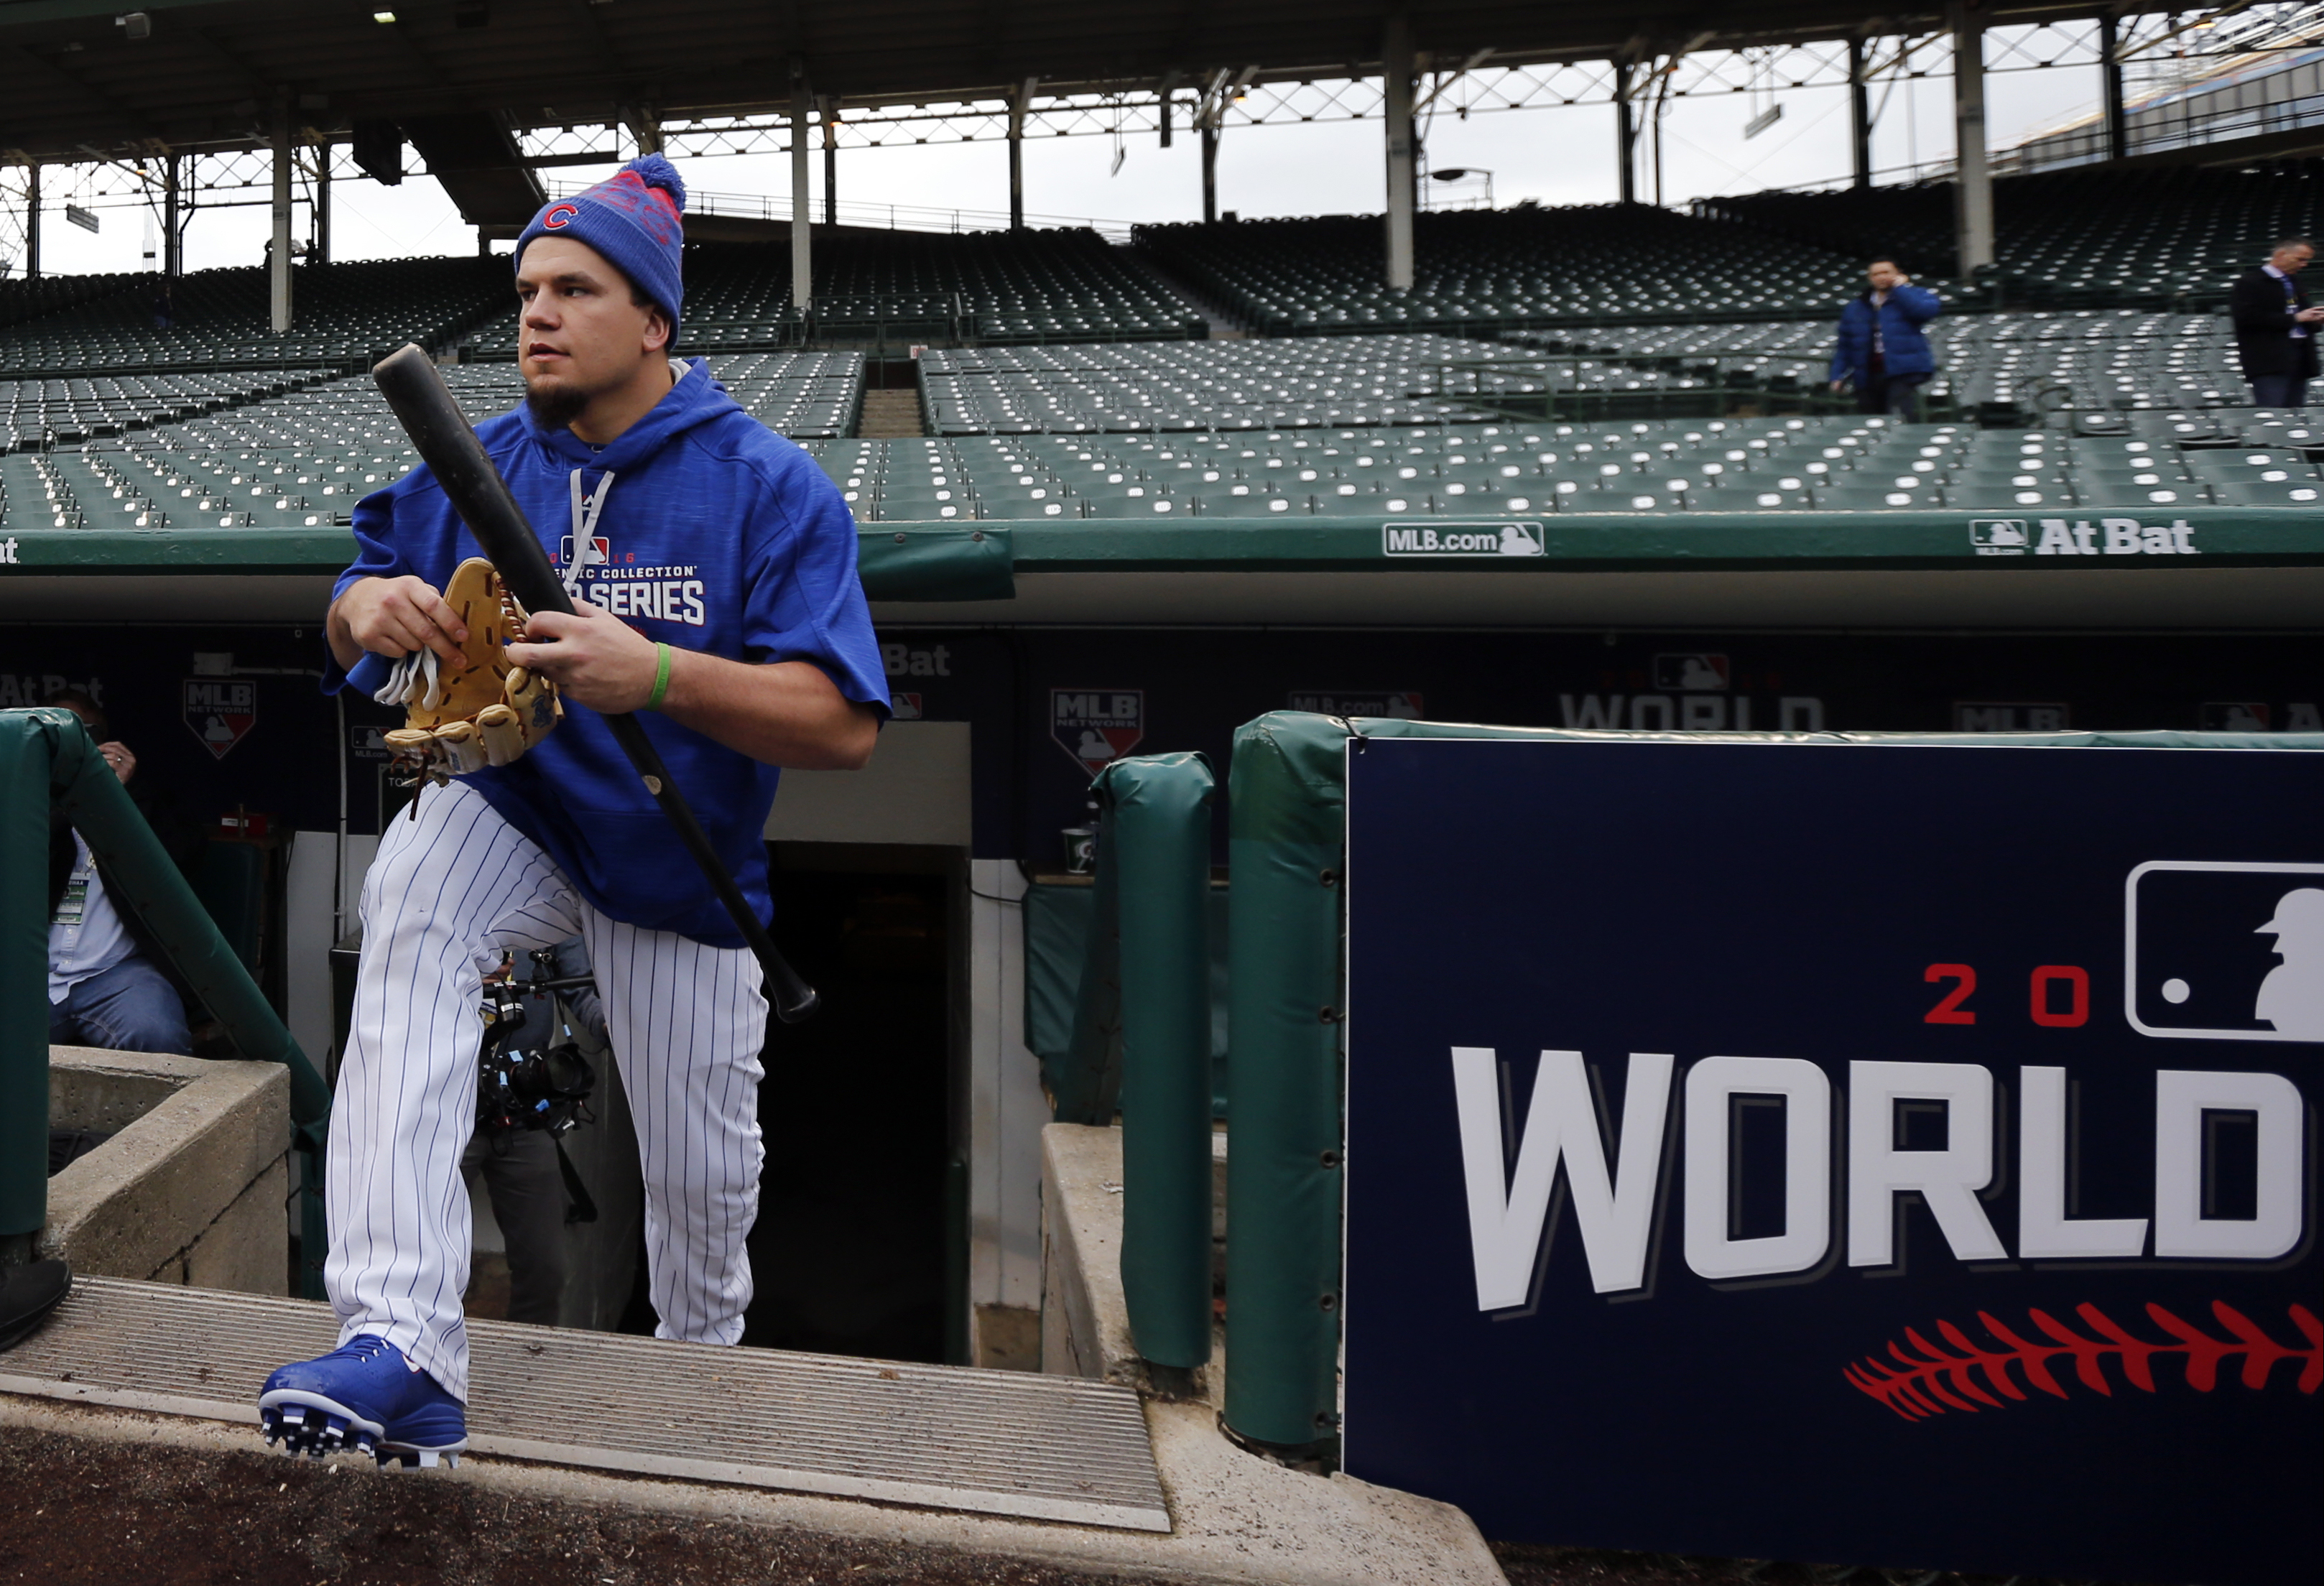 Chicago Cubs' Kyle Schwarber walks out to the field to work out for Friday's Game 3 of the Major League Baseball World Series against the Cleveland Indians, Thursday, Oct. 27, 2016, in Chicago. (AP Photo/Charles Rex Arbogast)